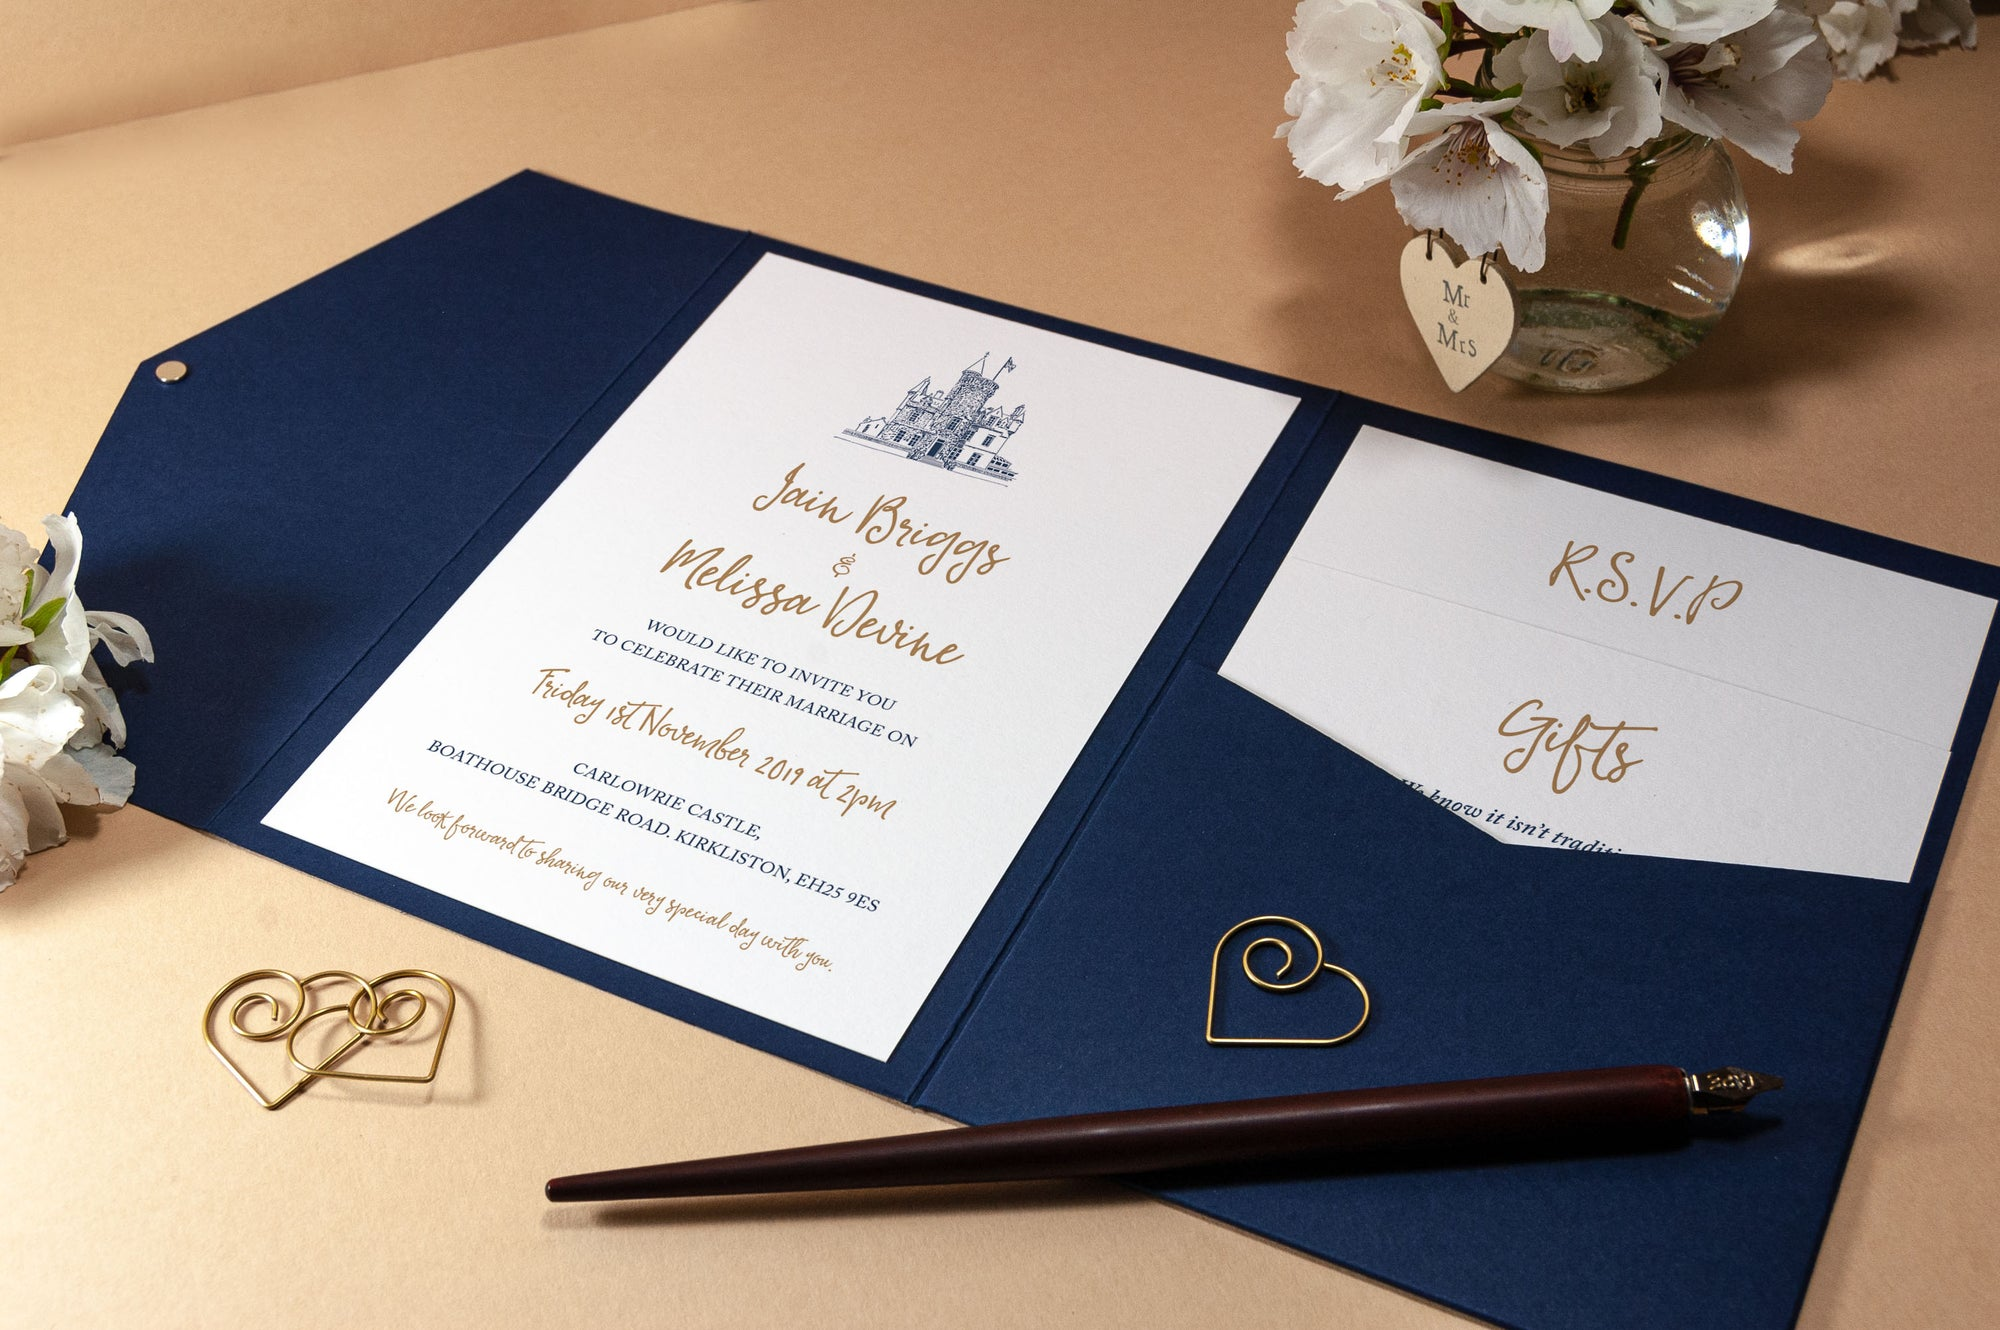 Carlowrie Castle Wedding Invitation in Pocketfold Wallet, Sample